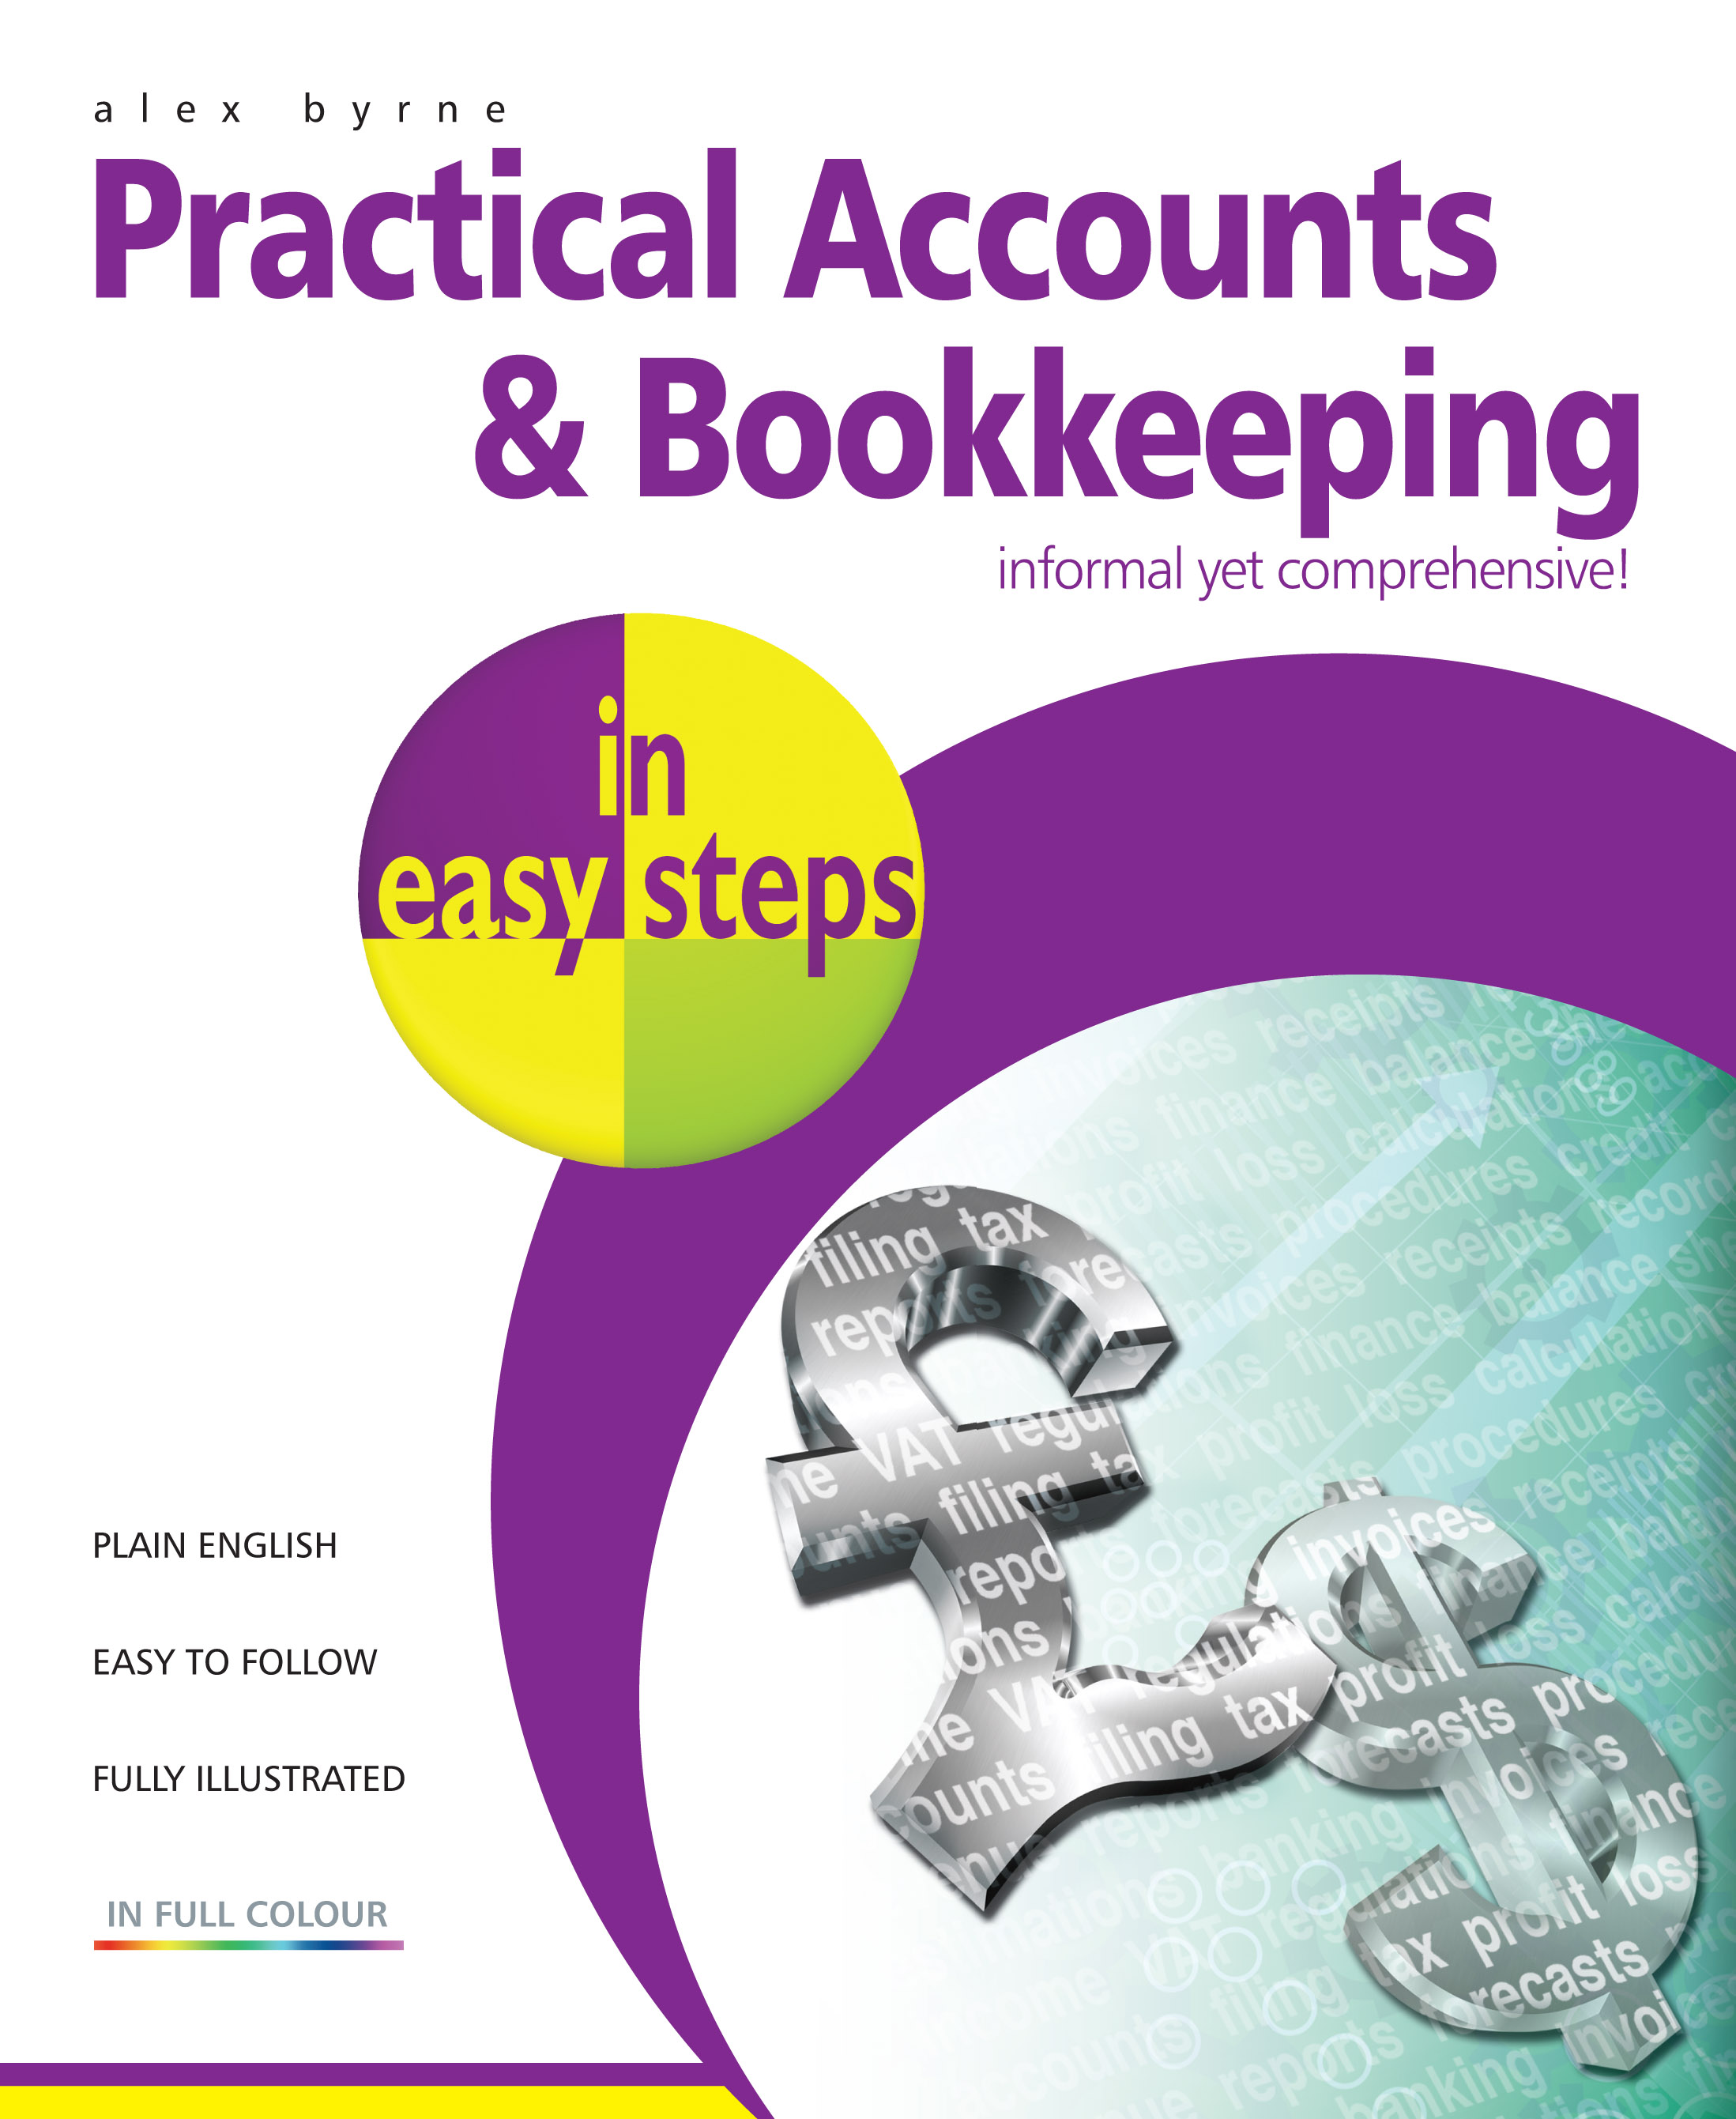 Practical Accounts and Bookkeeping in easy steps 9781840784183 PDF